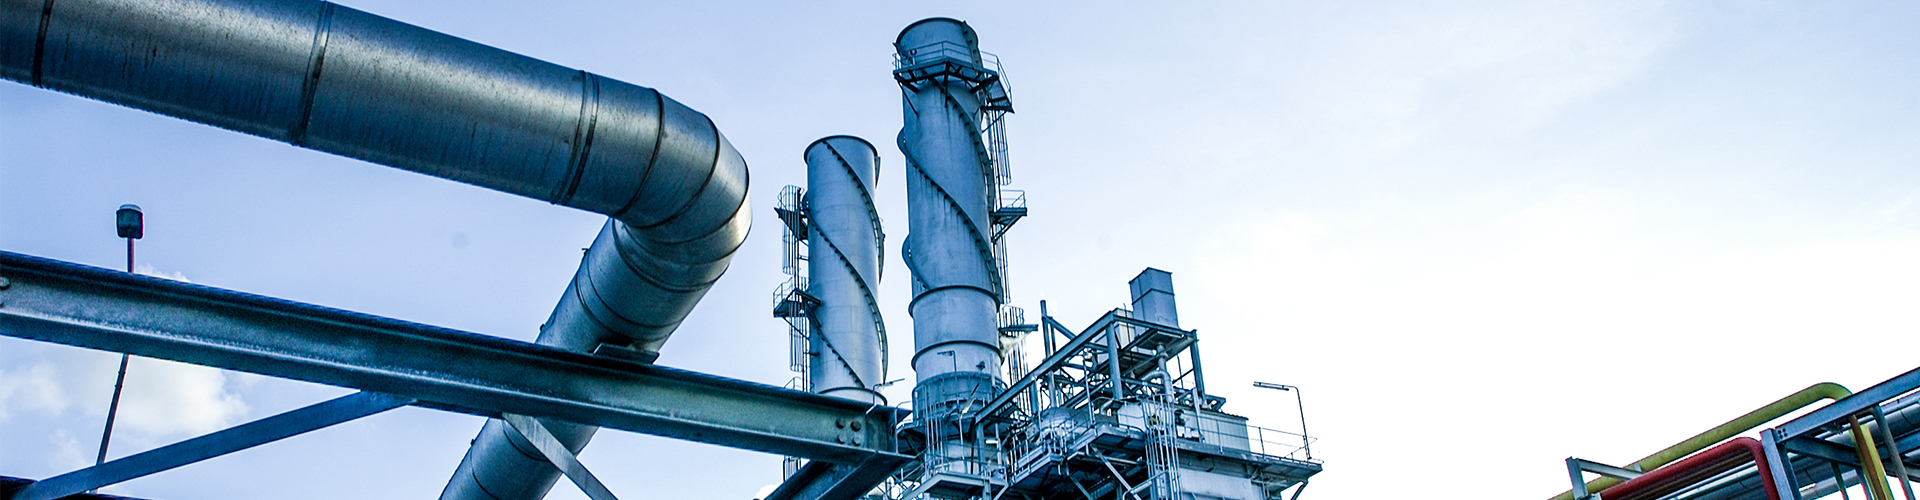 Industrial view at oil refinery plant with sky